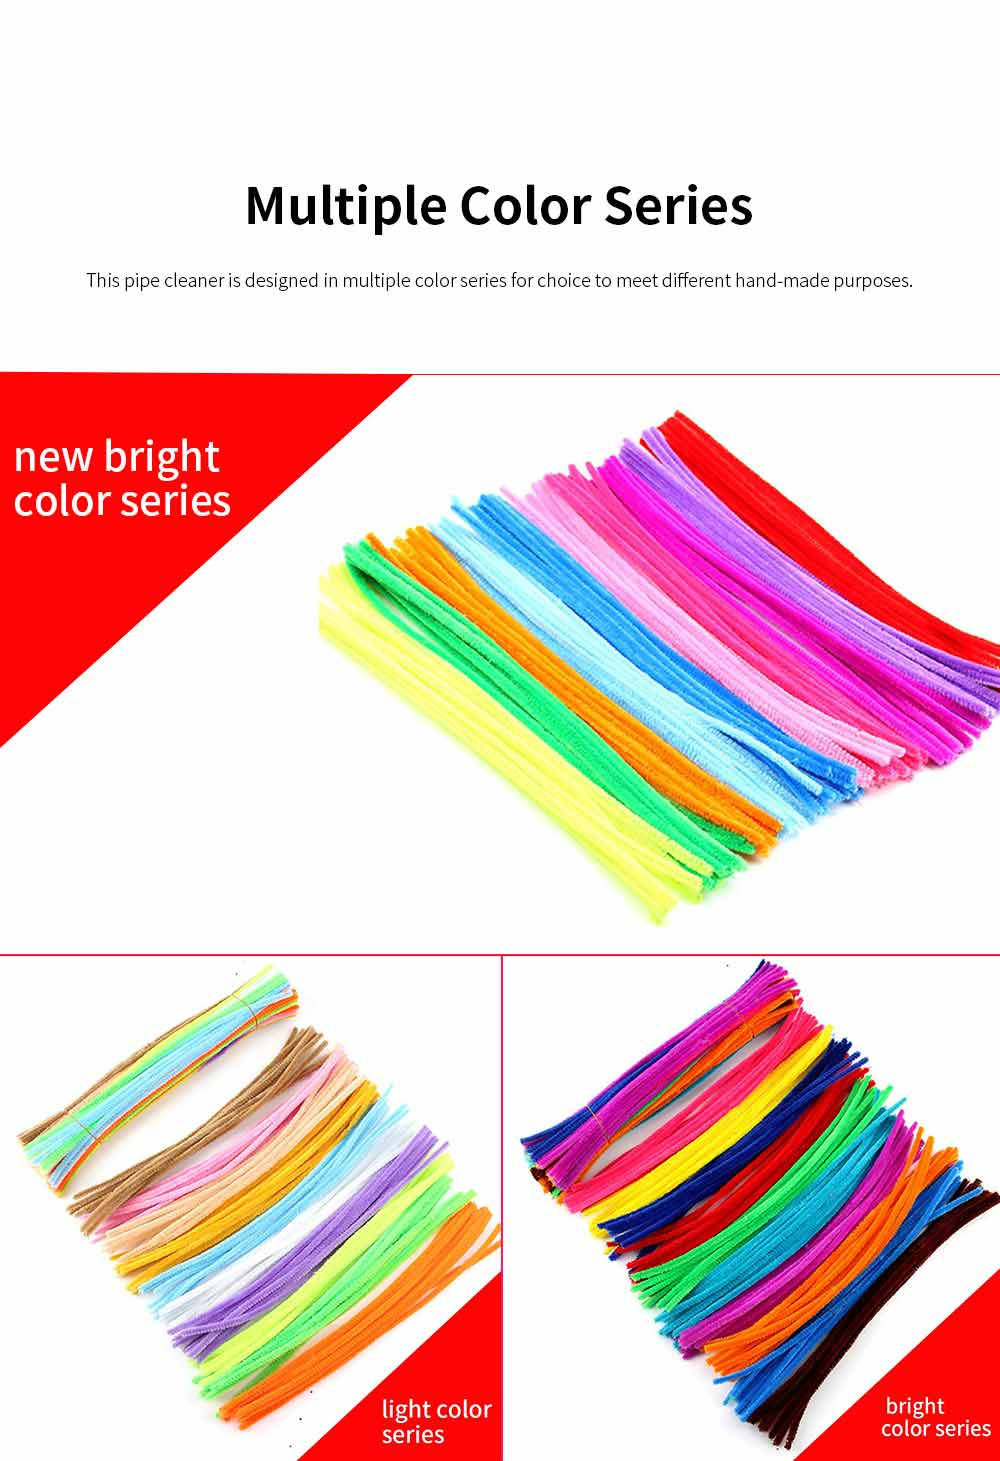 100pcs Per Set Twist Stick Velvet Pipe for Hand-made Use Ten-color Mixed Twisting Stick Light Color Series DIY Tool Mixed 10 Color 3